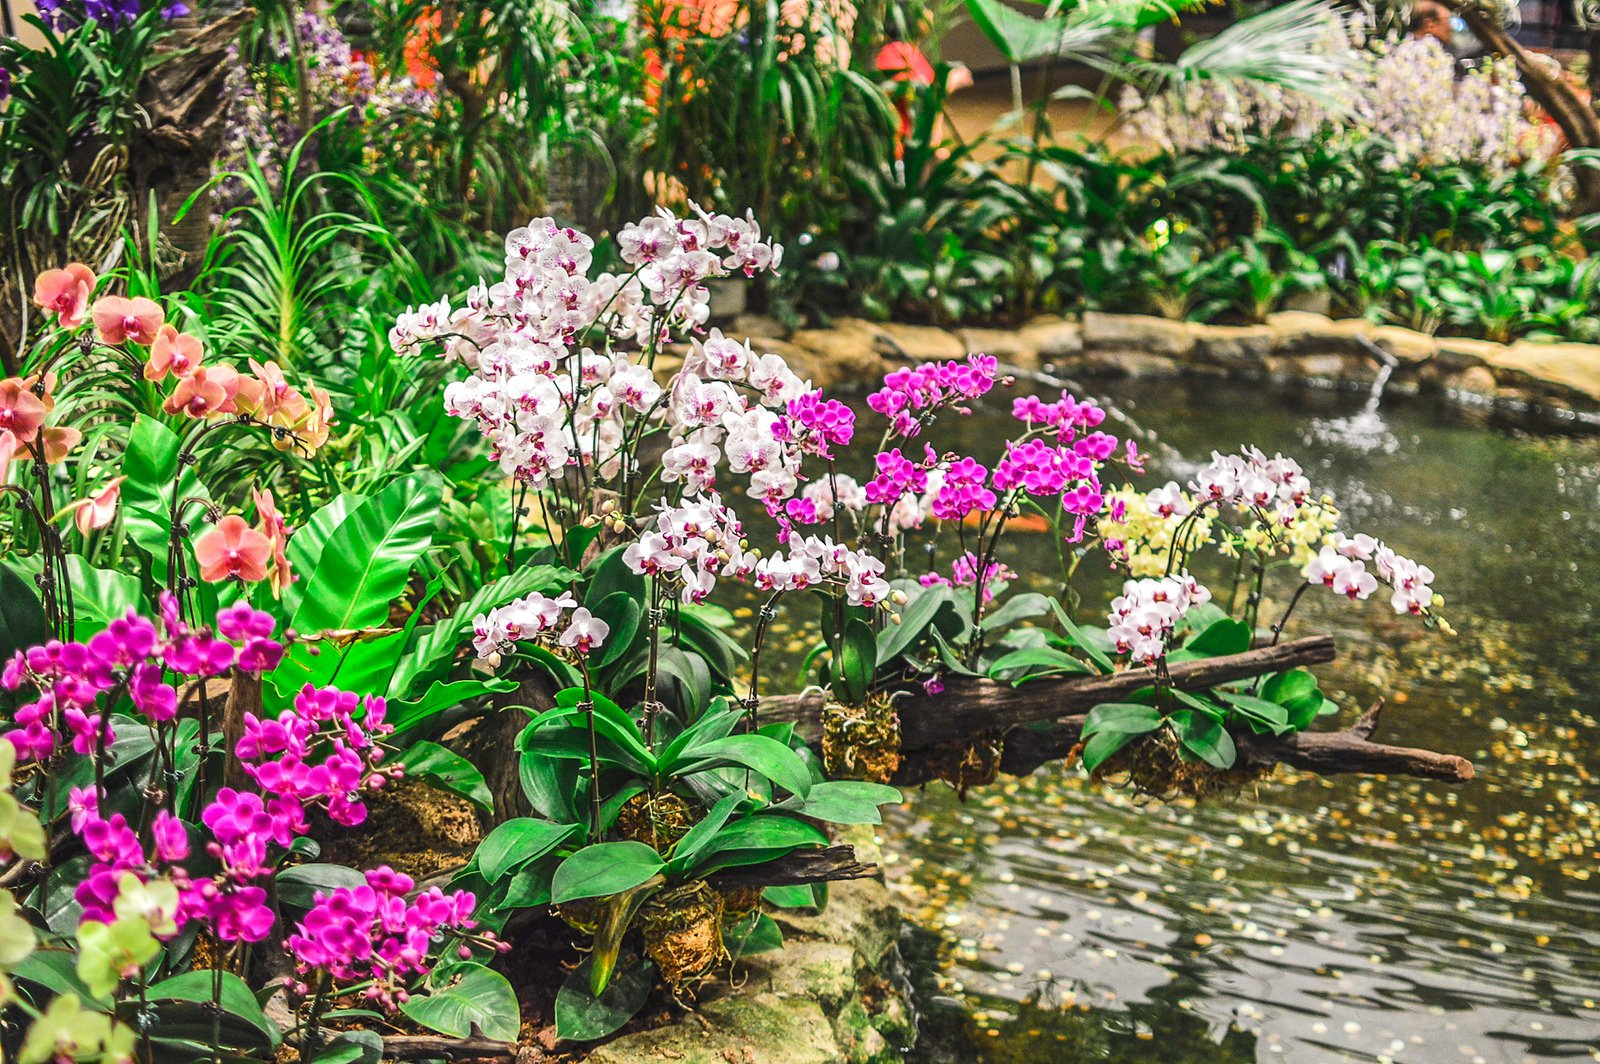 changi airport orchid garden